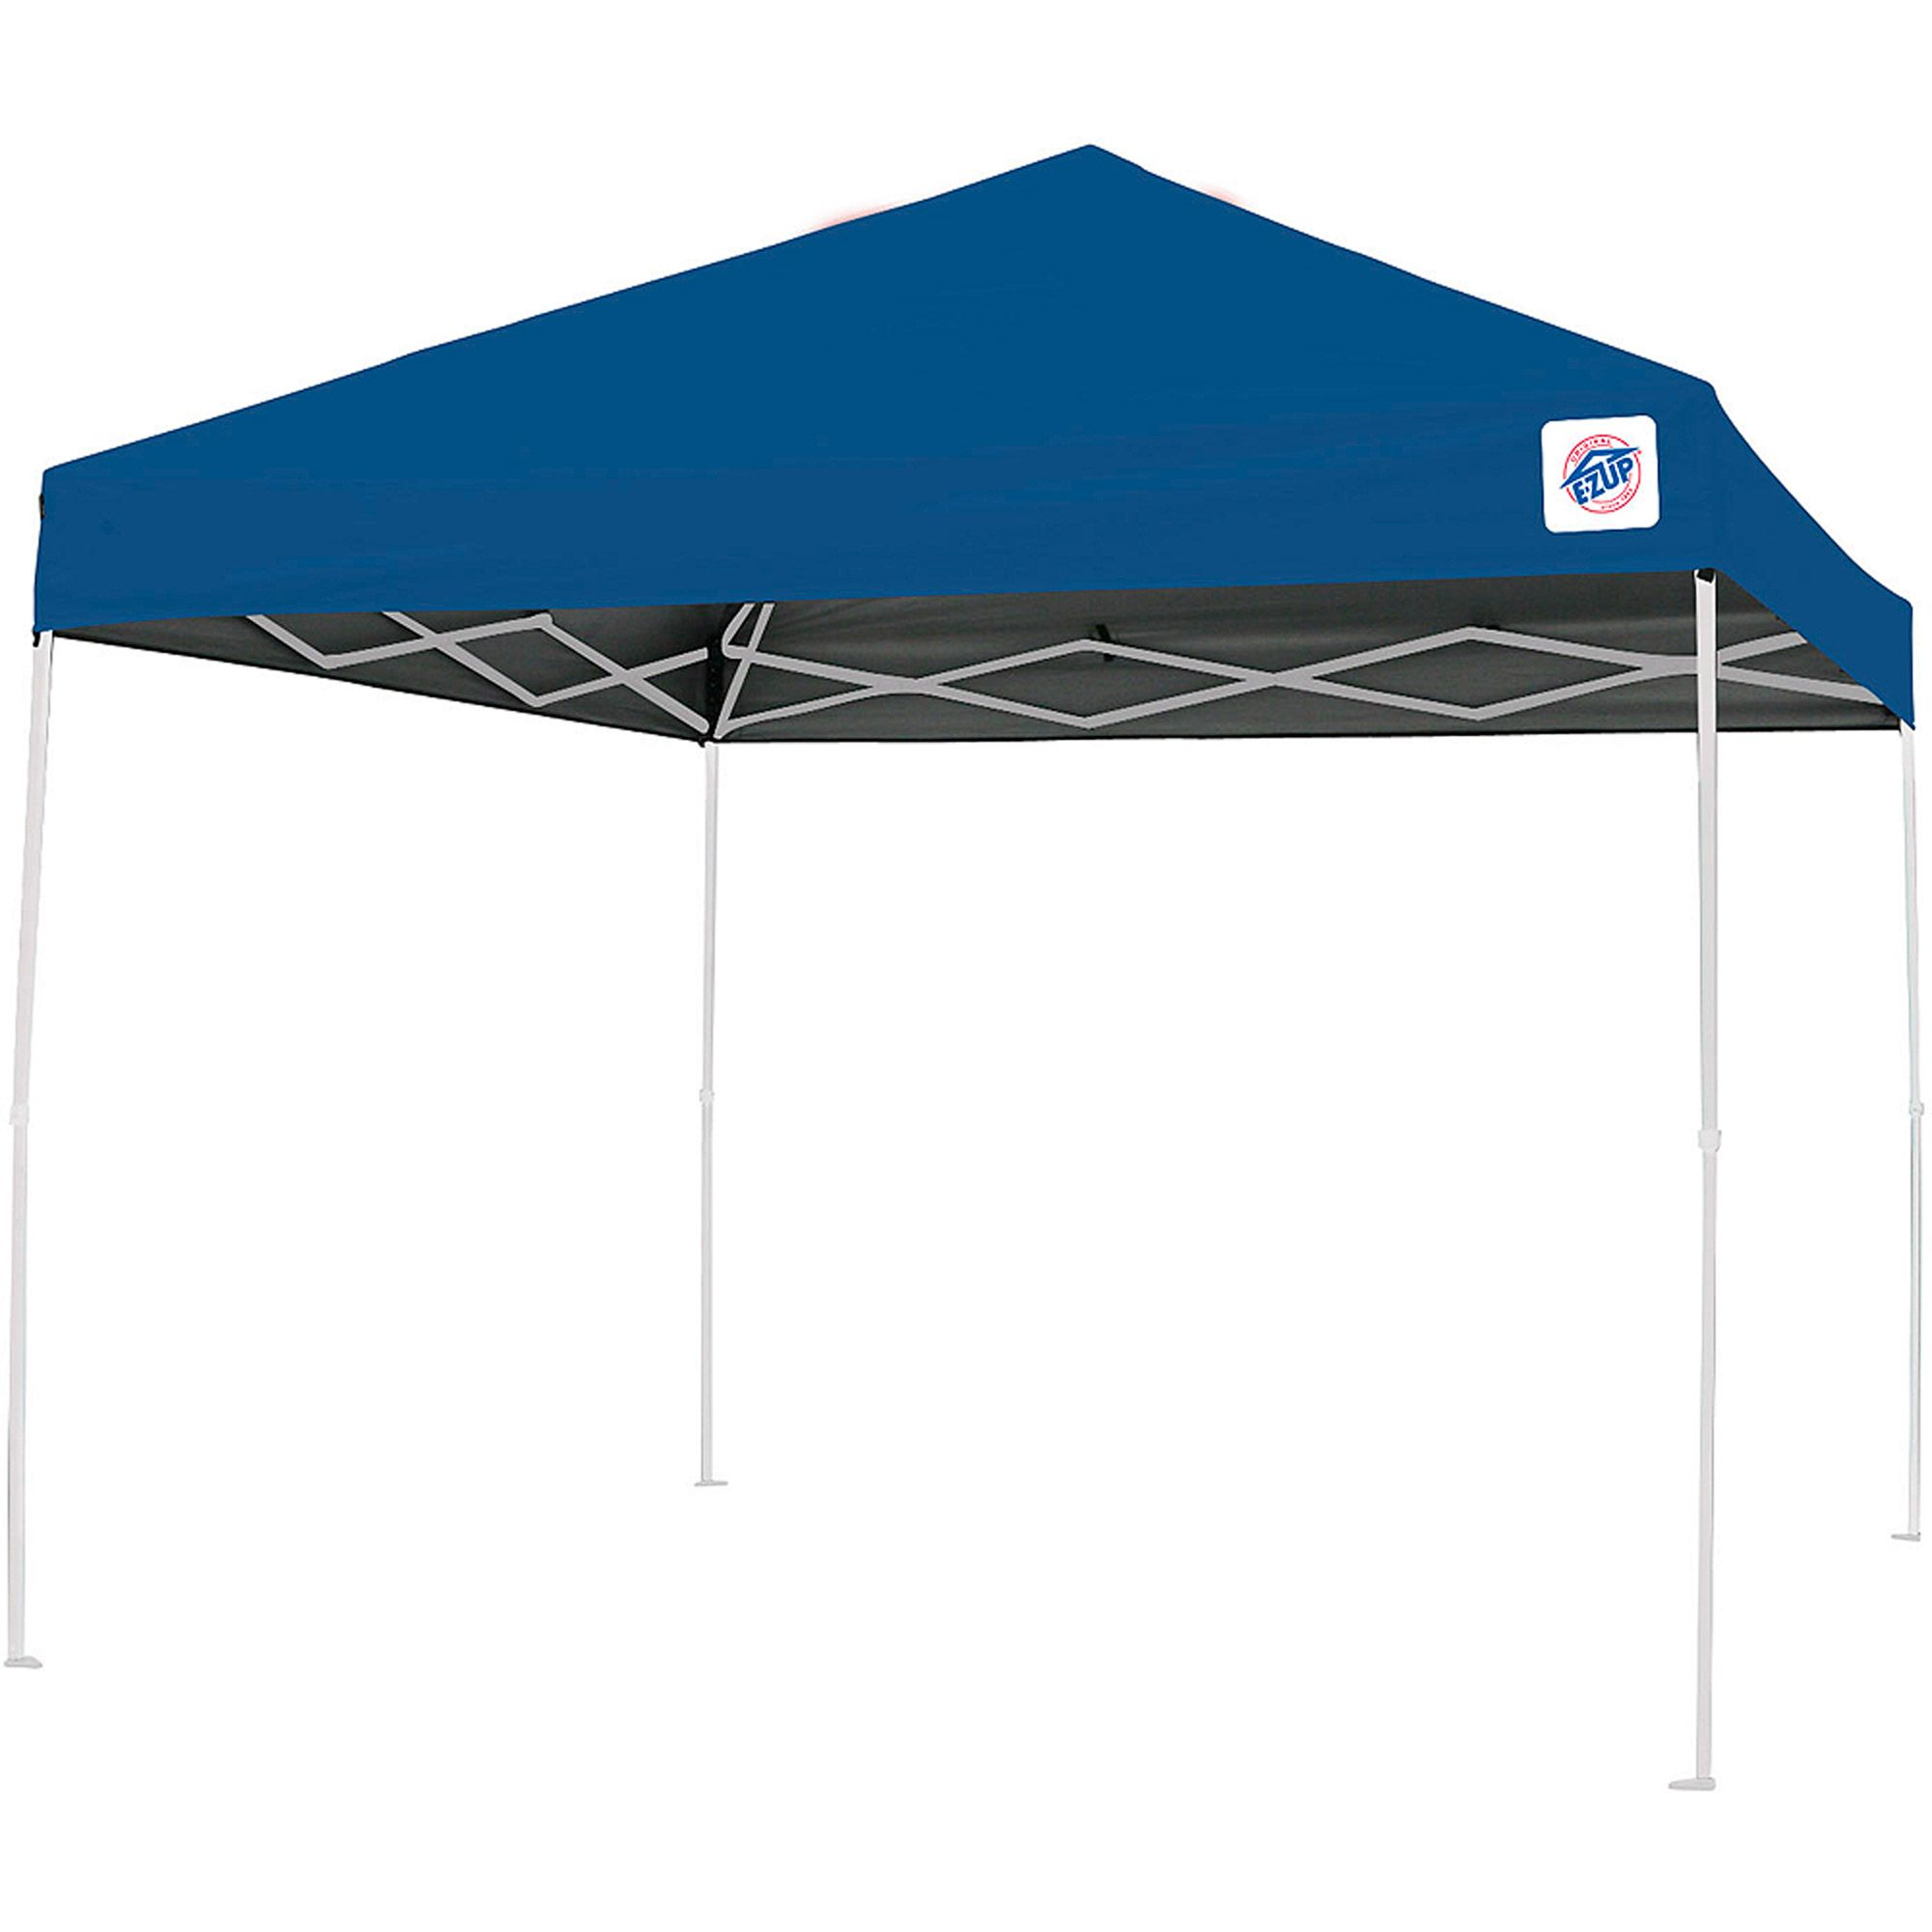 Lightweight Portable Canopy Tent Set 10 X 10 By Trademark Innovations Beige Canopy Cover Portable Canopy Canopy Tent Canopy Cover